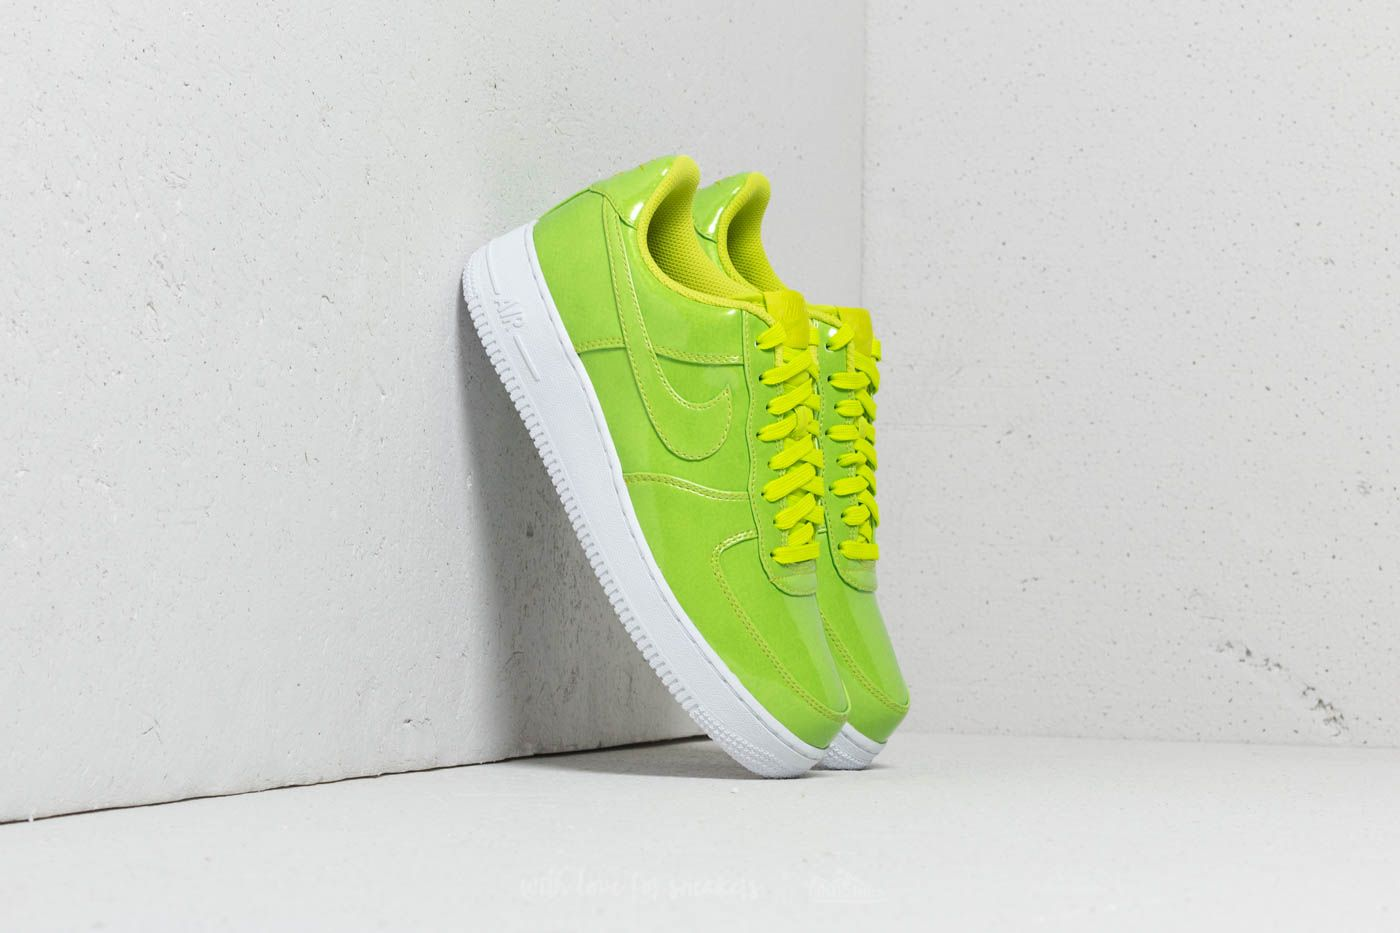 size 40 7c7d5 4caf1 Nike Air Force 1 '07 LV8 UV Cyber/ Cyber-White | Footshop